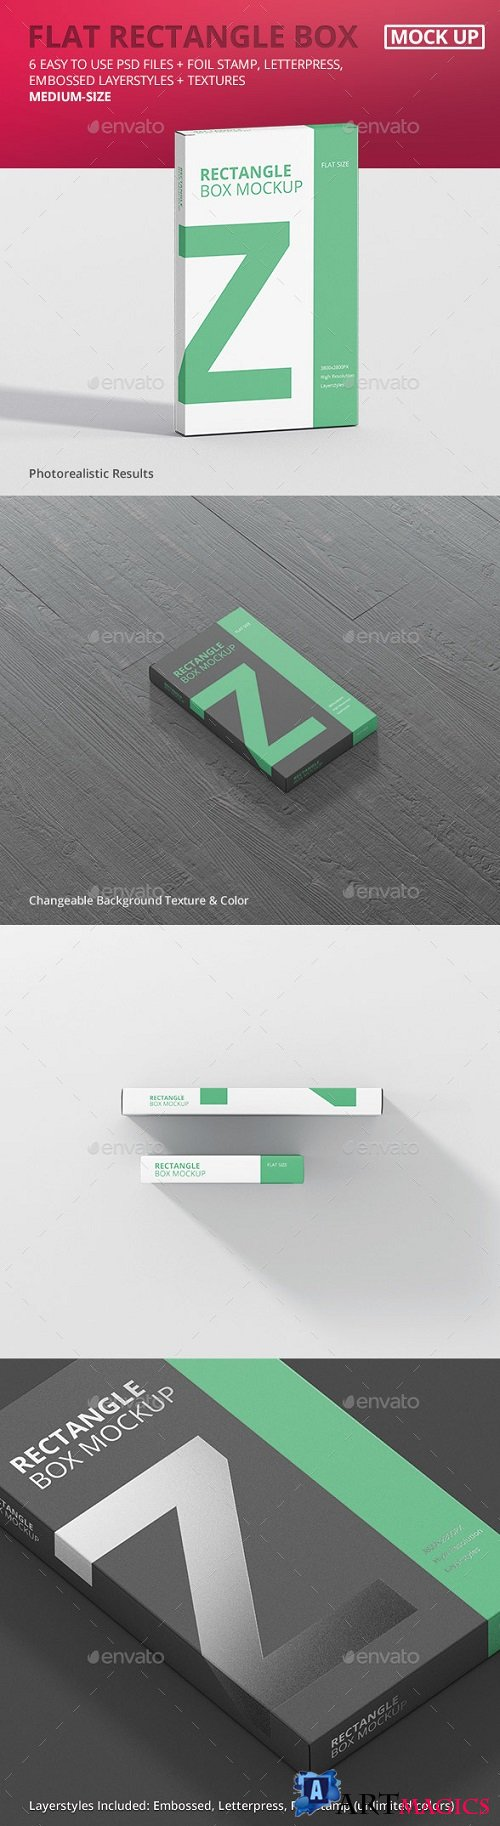 Box Mockup - Medium Size Flat Rectangle 21006853